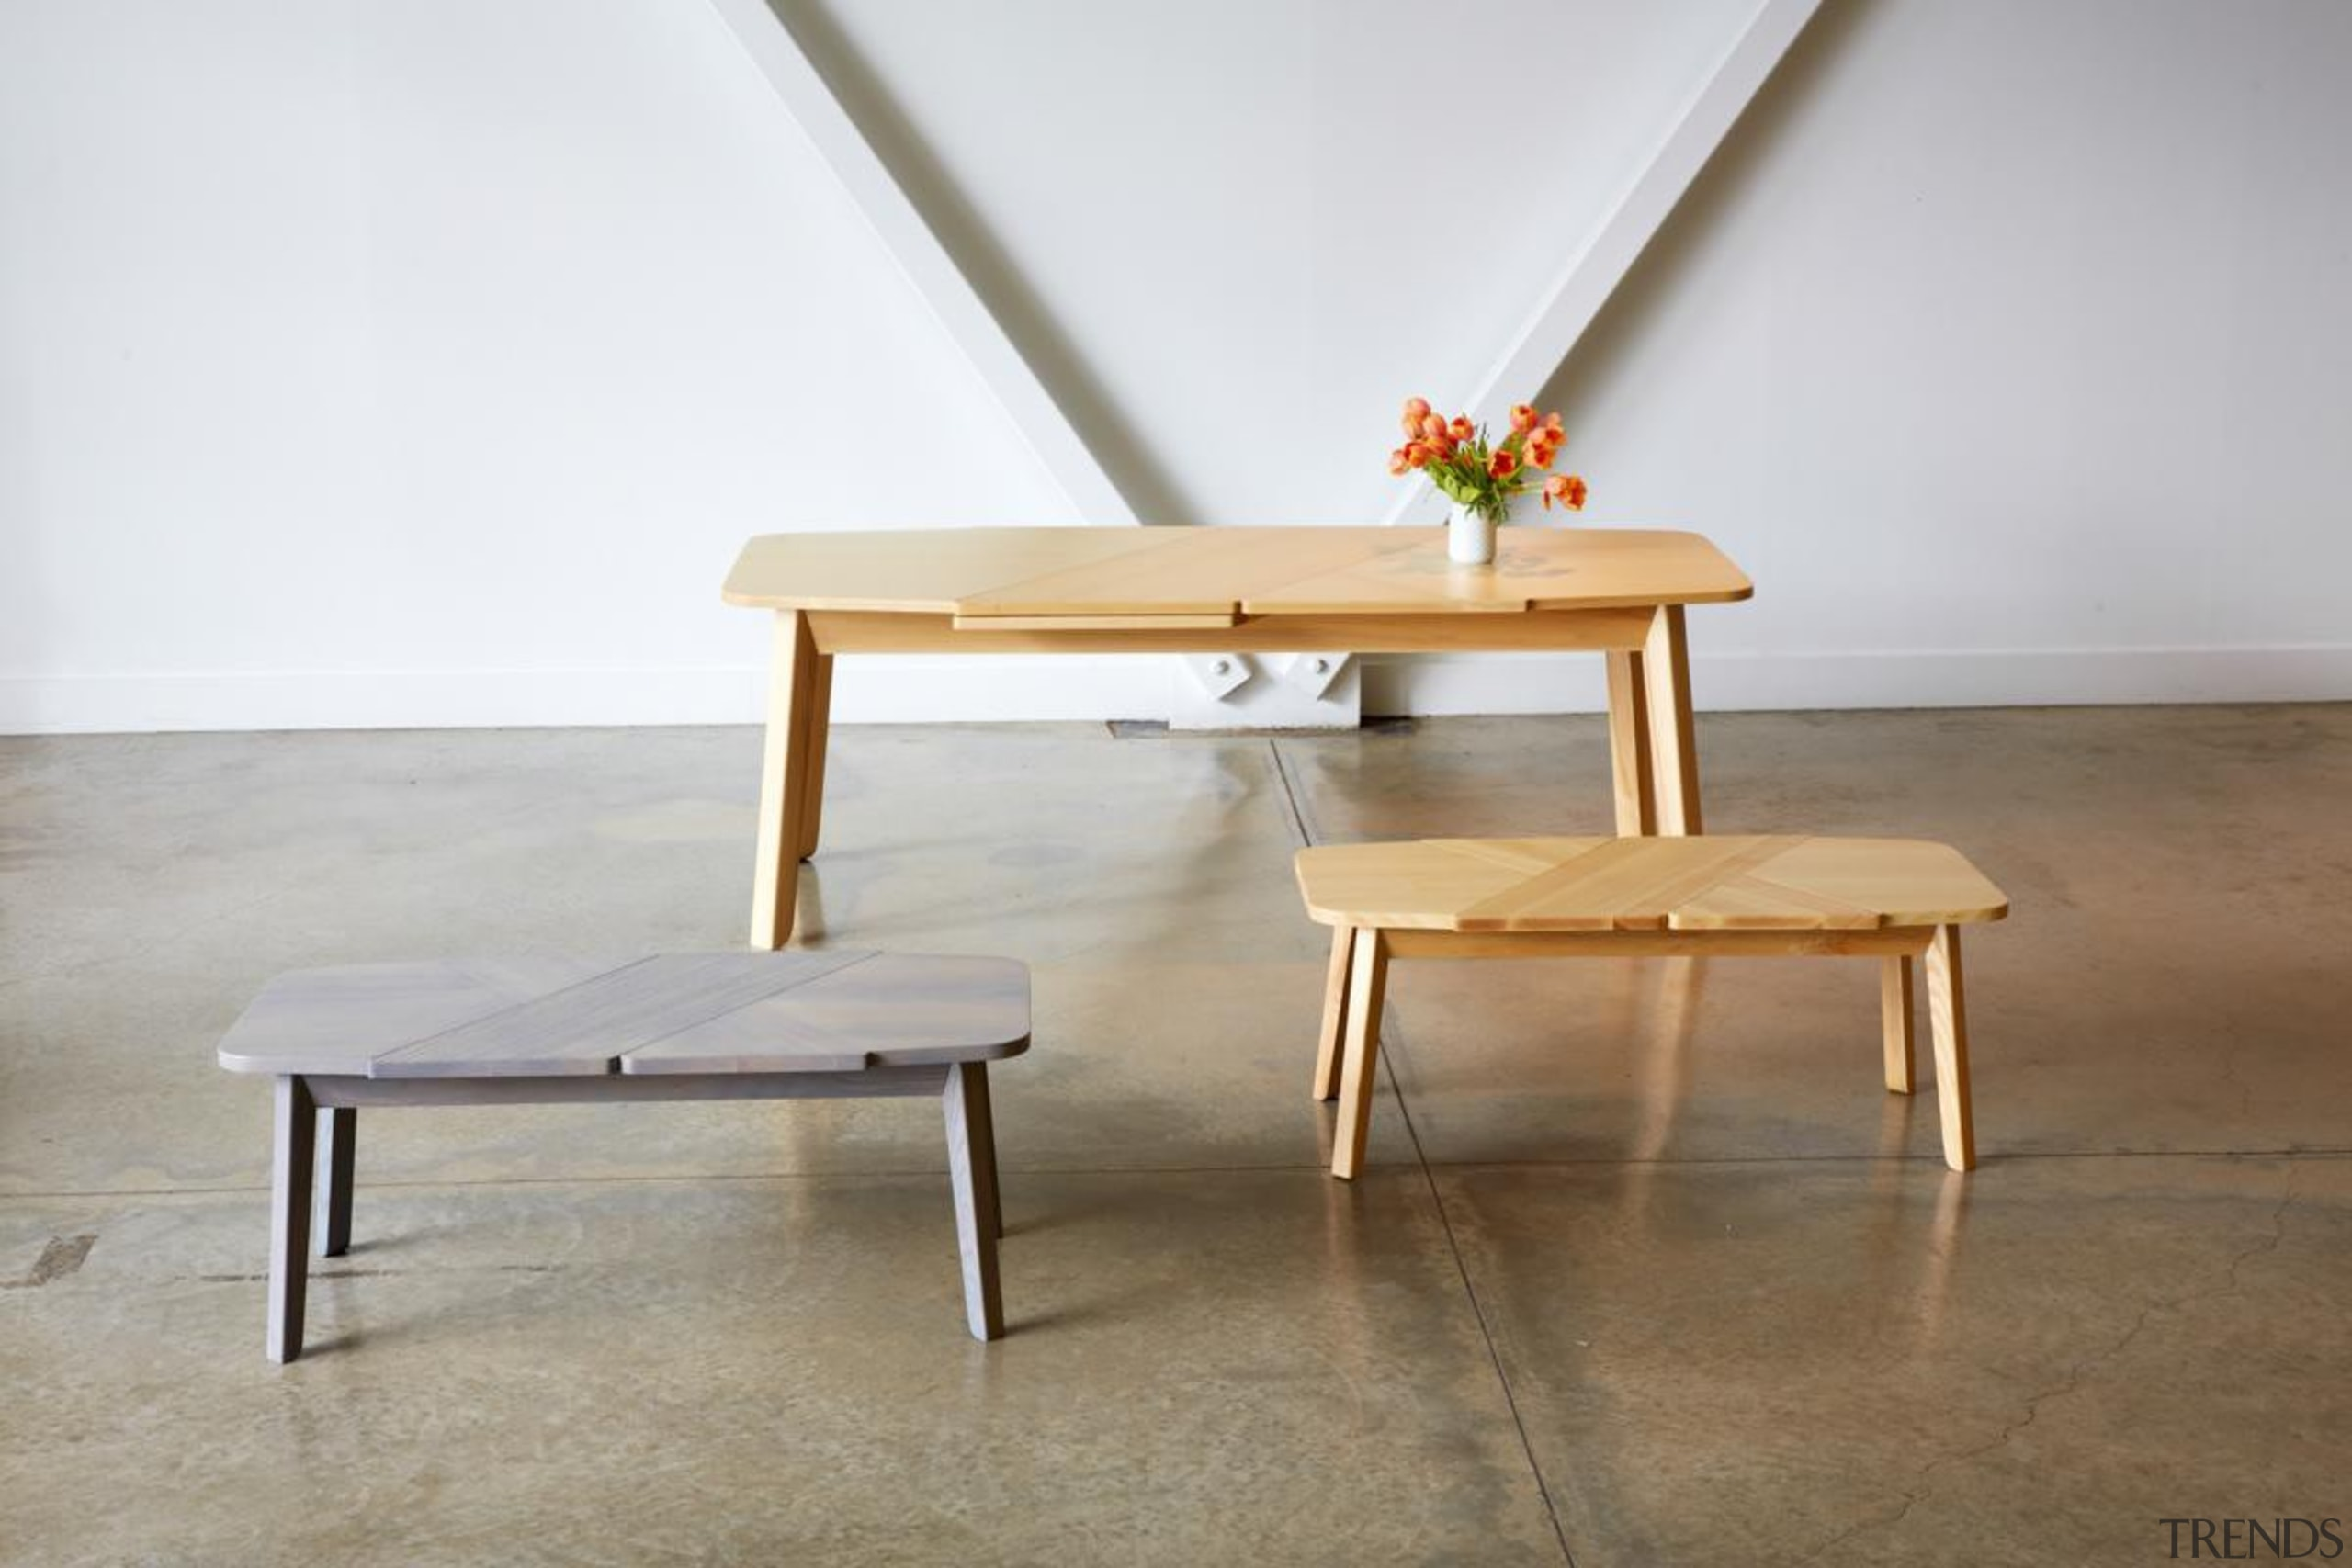 It's a wrap! Or rather, it's a Wrap chair, coffee table, floor, furniture, plywood, table, wood, white, gray